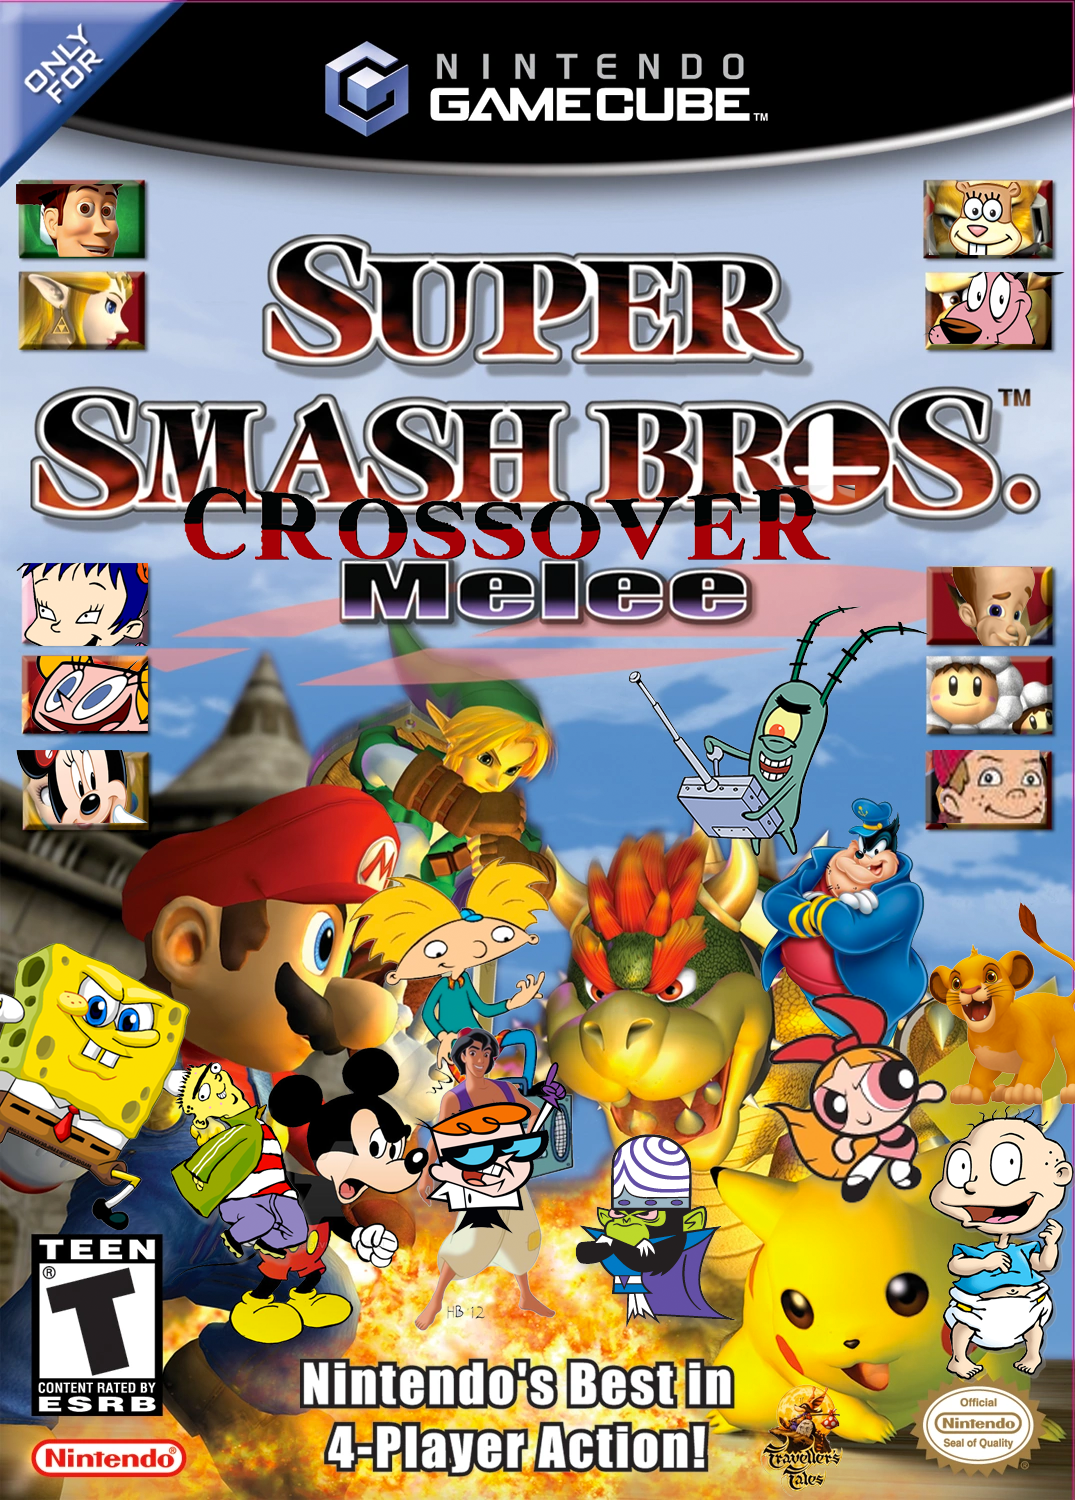 Super Smash Bros. Crossover Melee